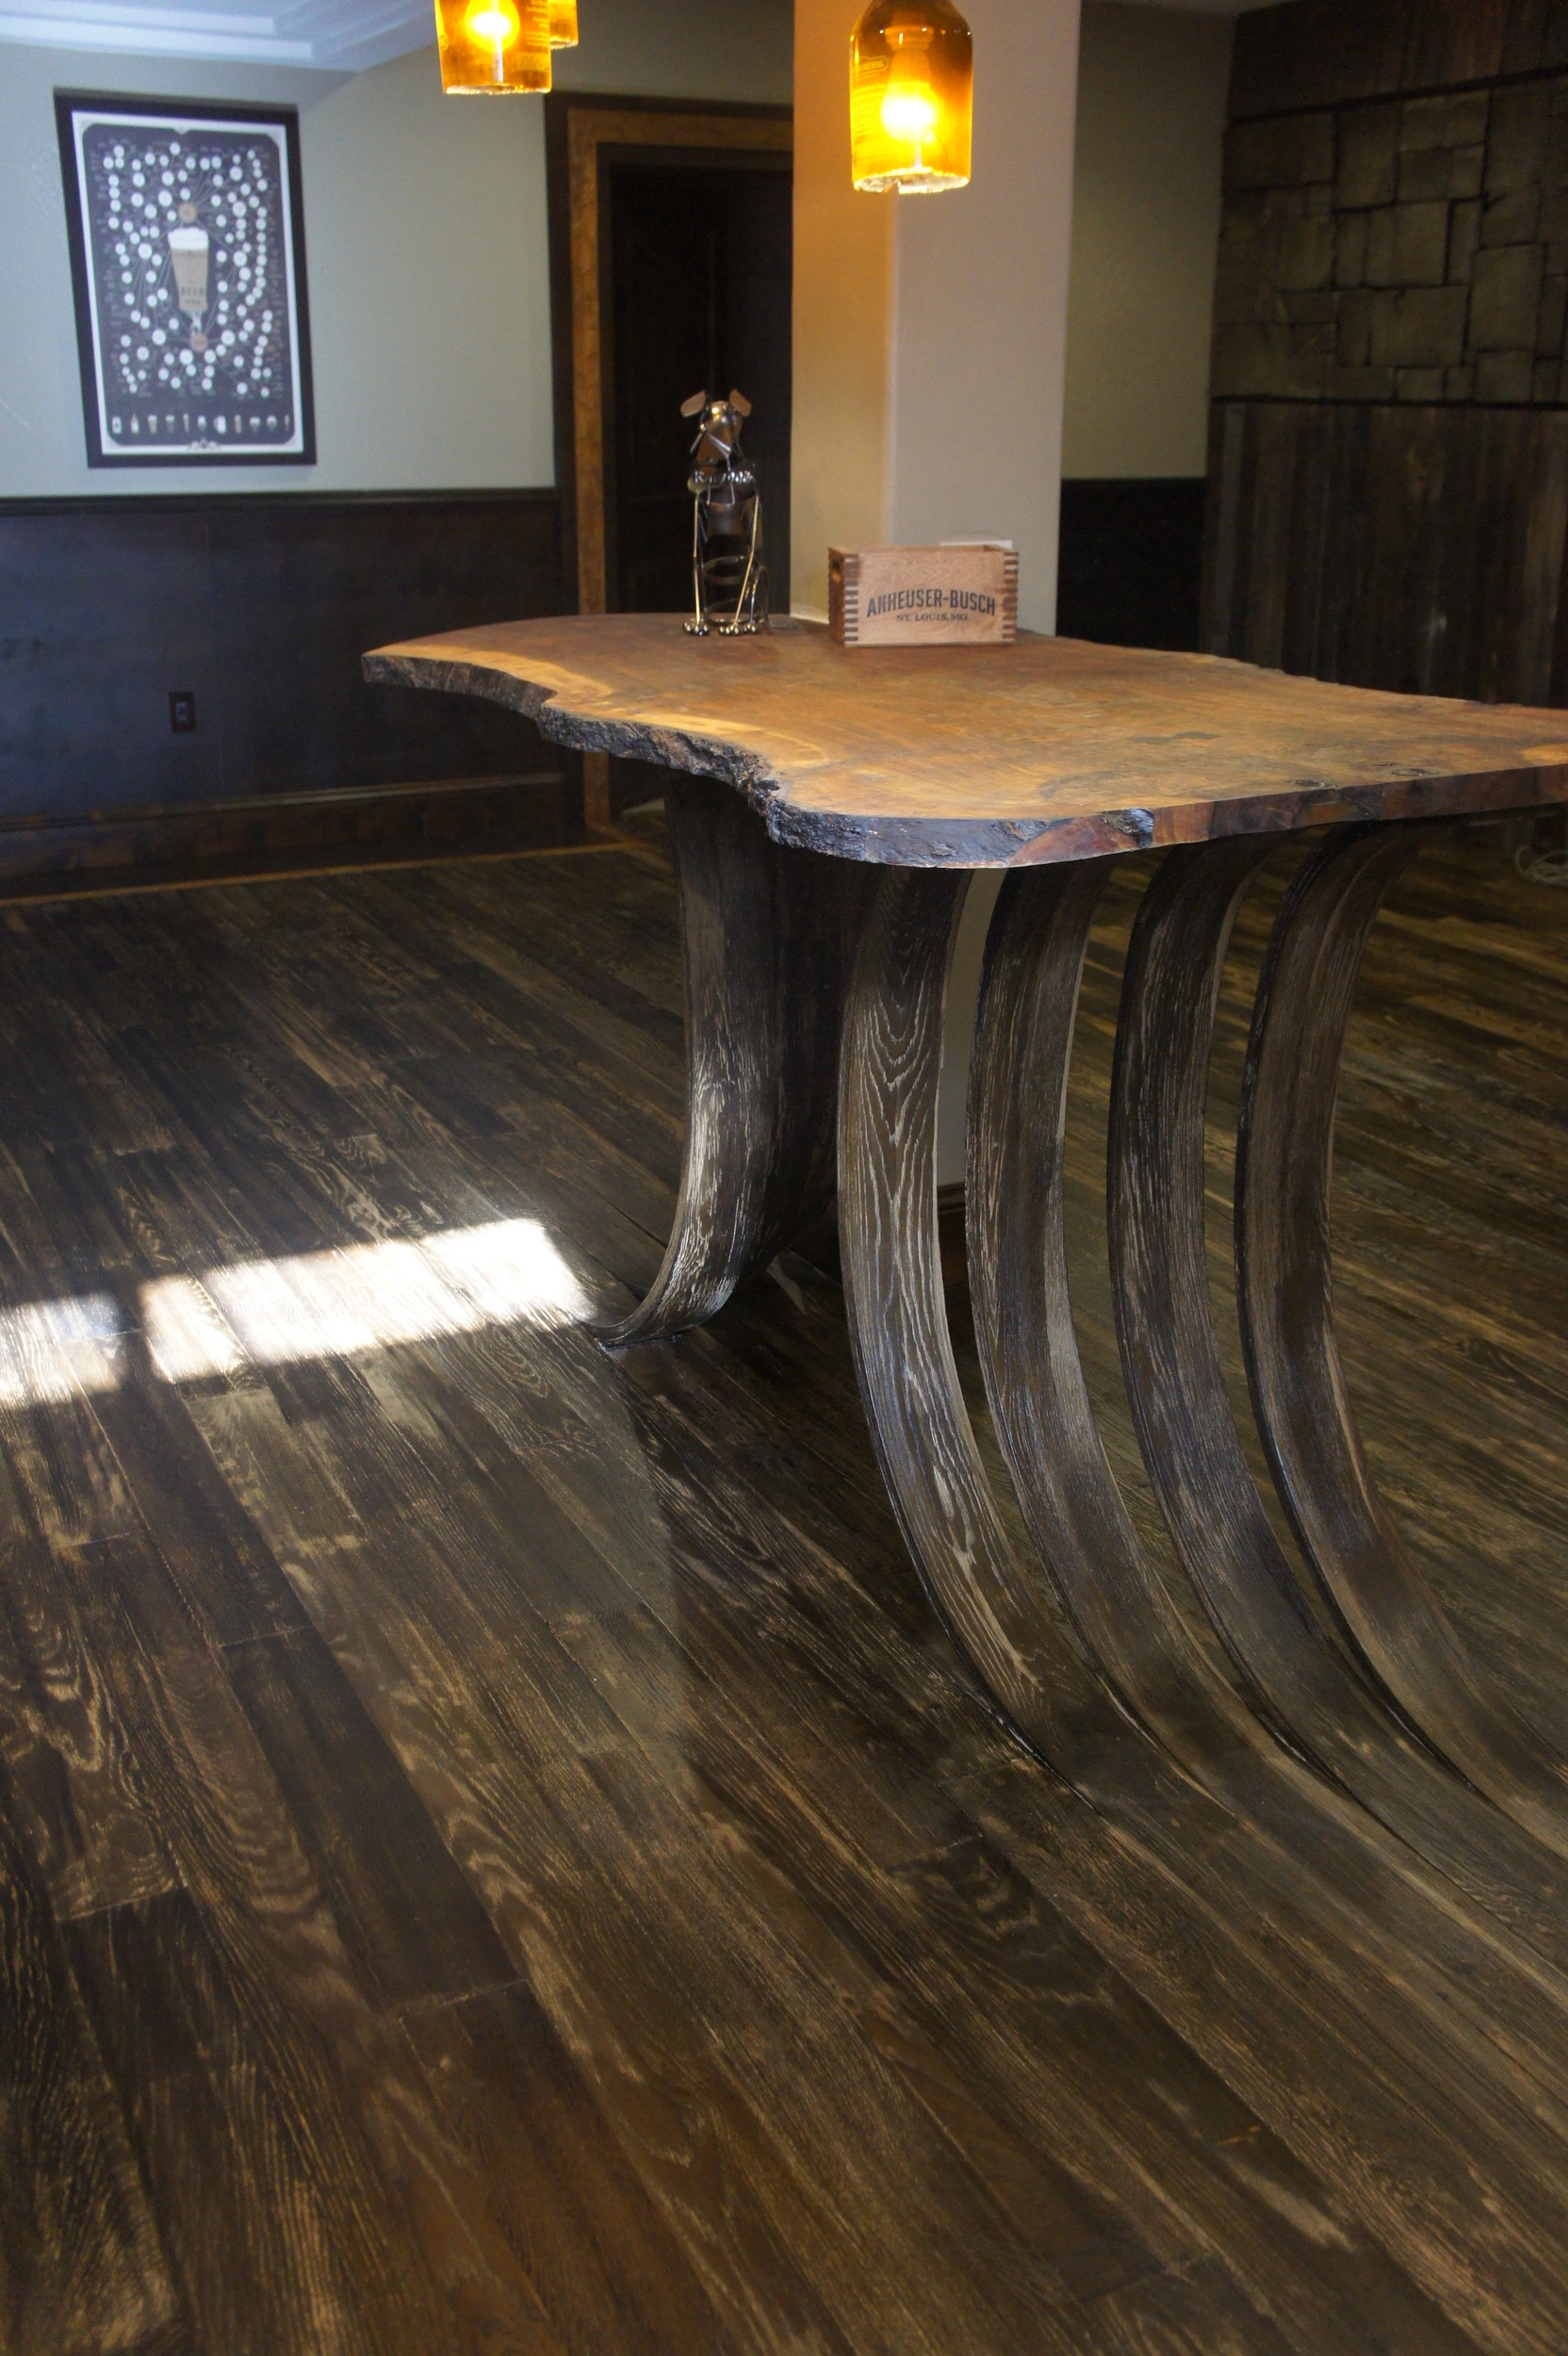 news parker colorado parkerchronicle net a modified chevron pattern wood floor dyed and oiled with miracle oil amd created by joe rocco co owner of artistic floors by design